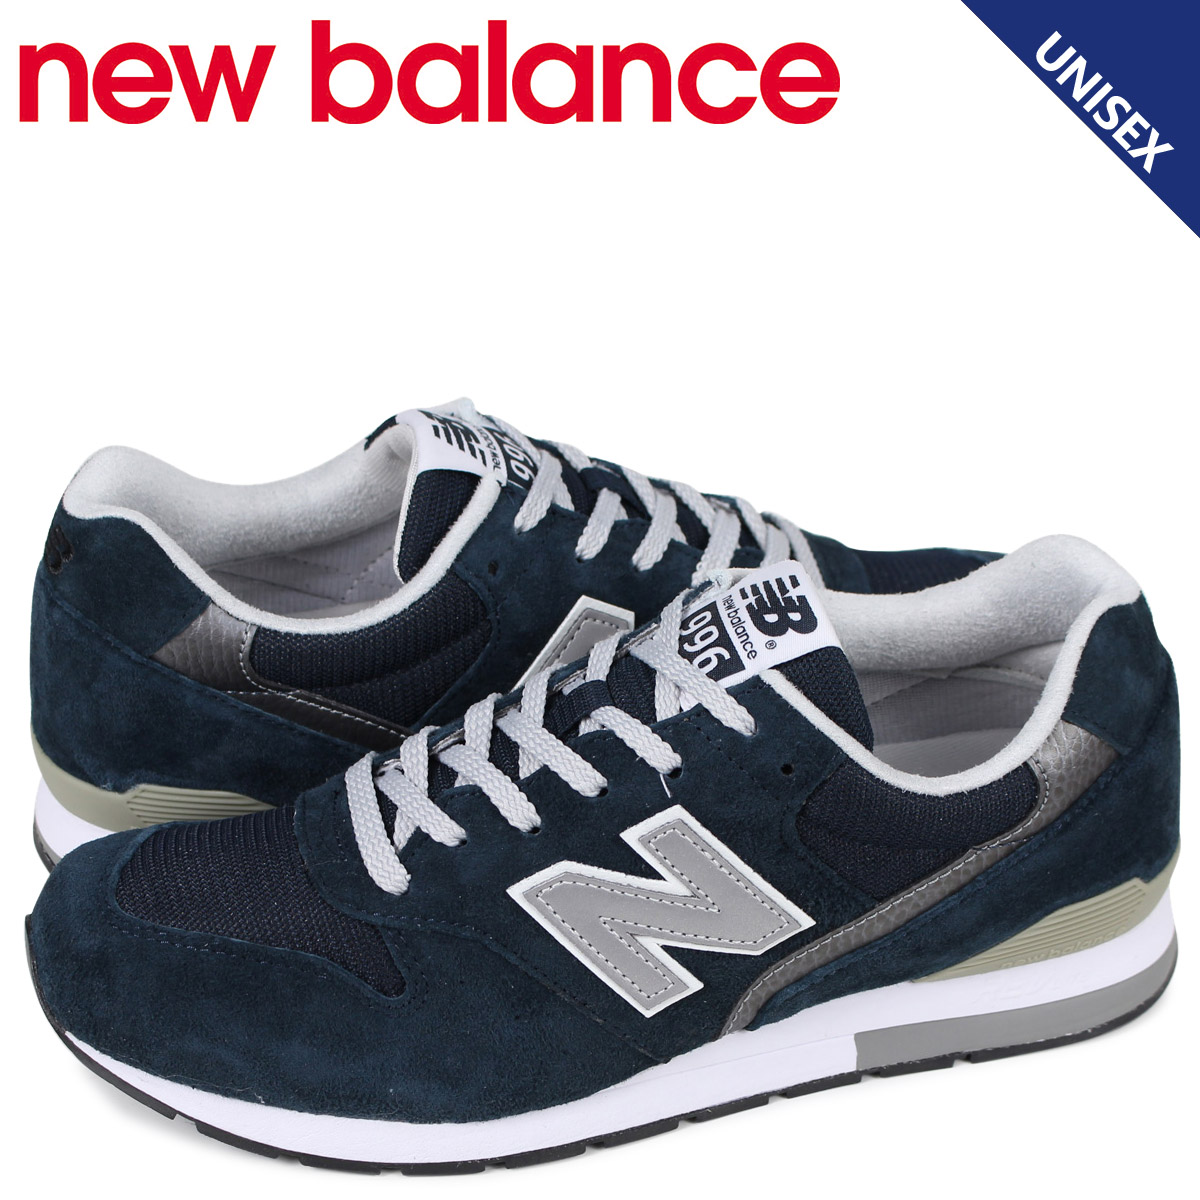 New Balance Lady Shoes Buy Online